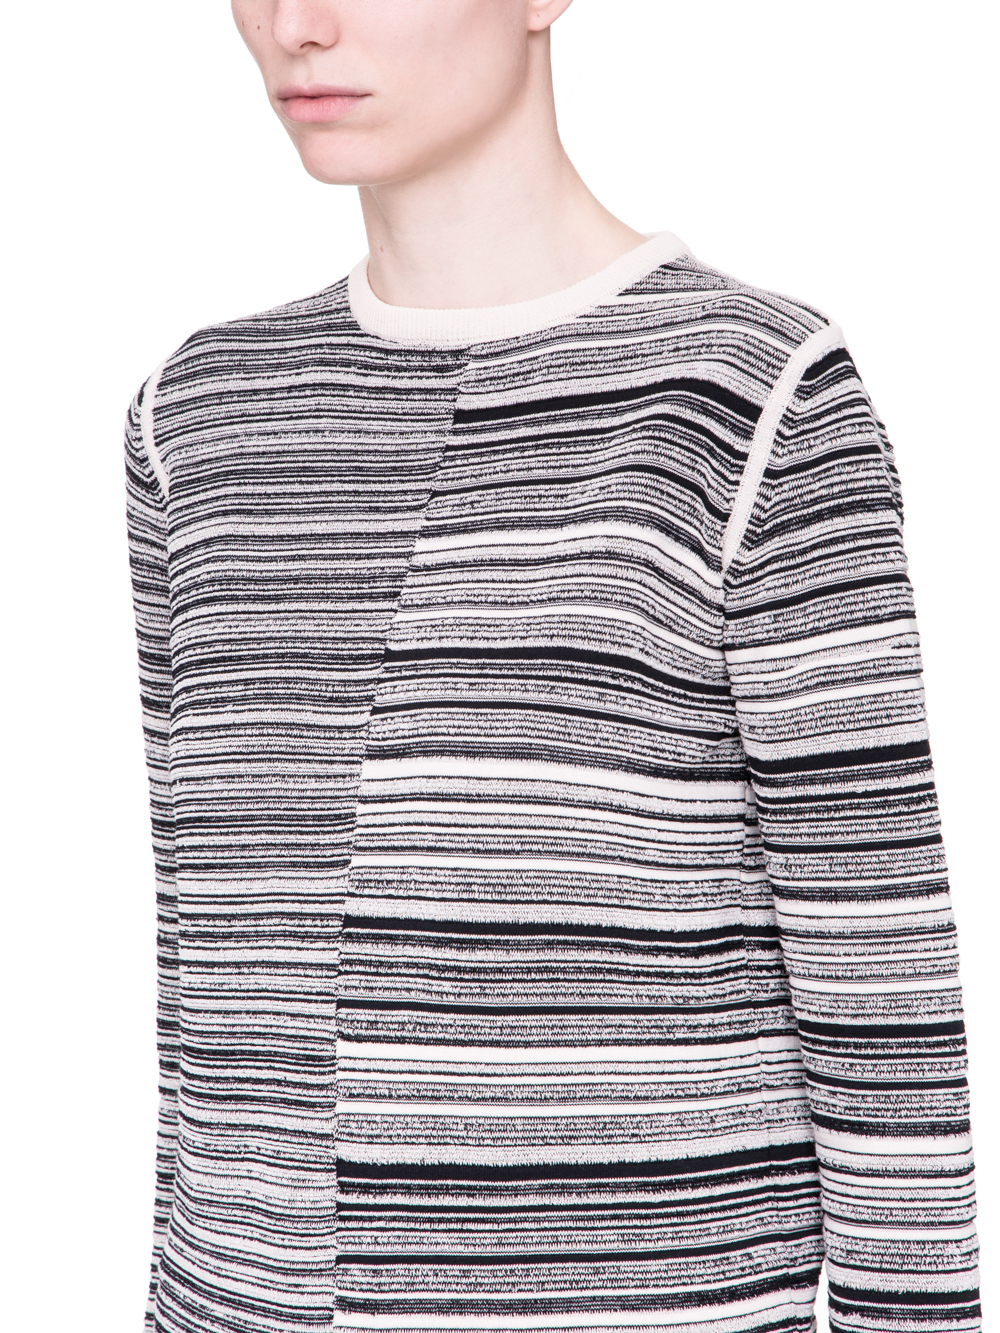 RICK OWENS SS19 BABEL SUB SHRED MIX SWEATER IN BLACK AND NATURAL BEIGE